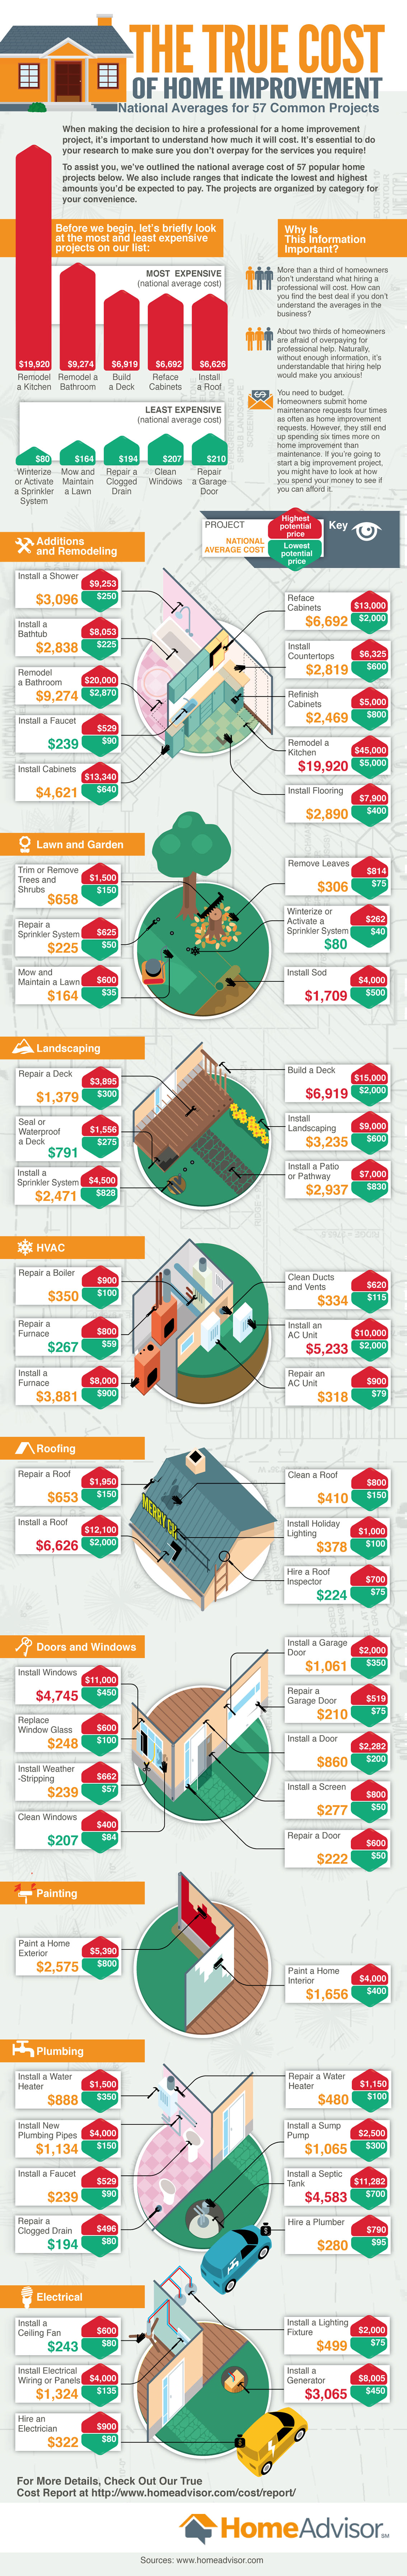 True Cost of Common Home Improvement Projects Infographic